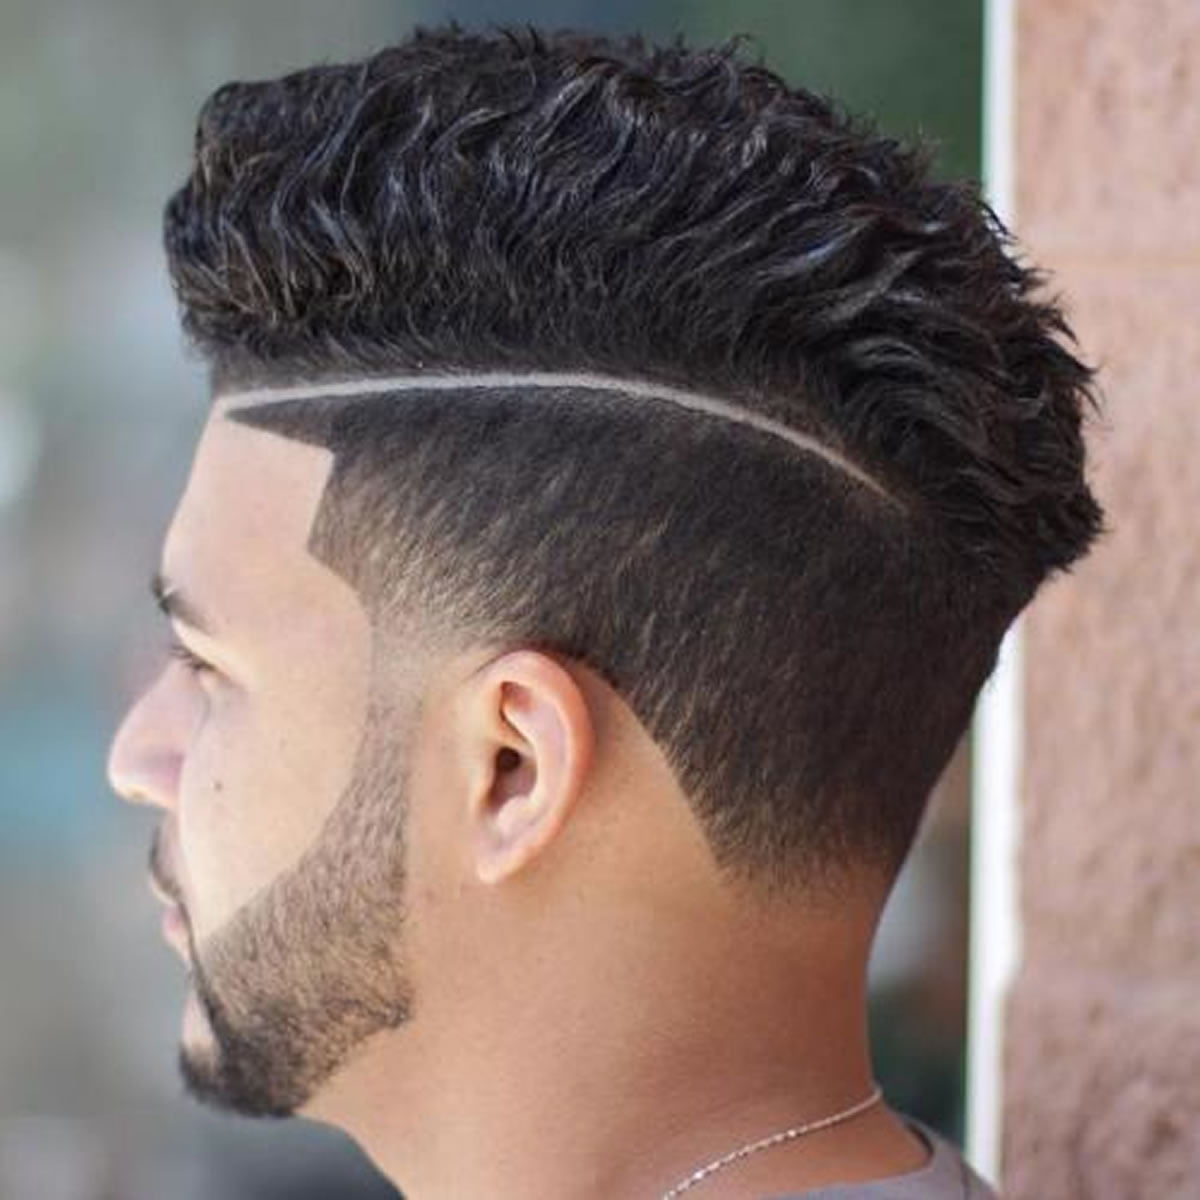 New Trendy Hairstyles For Guys 2018 Hairstyles